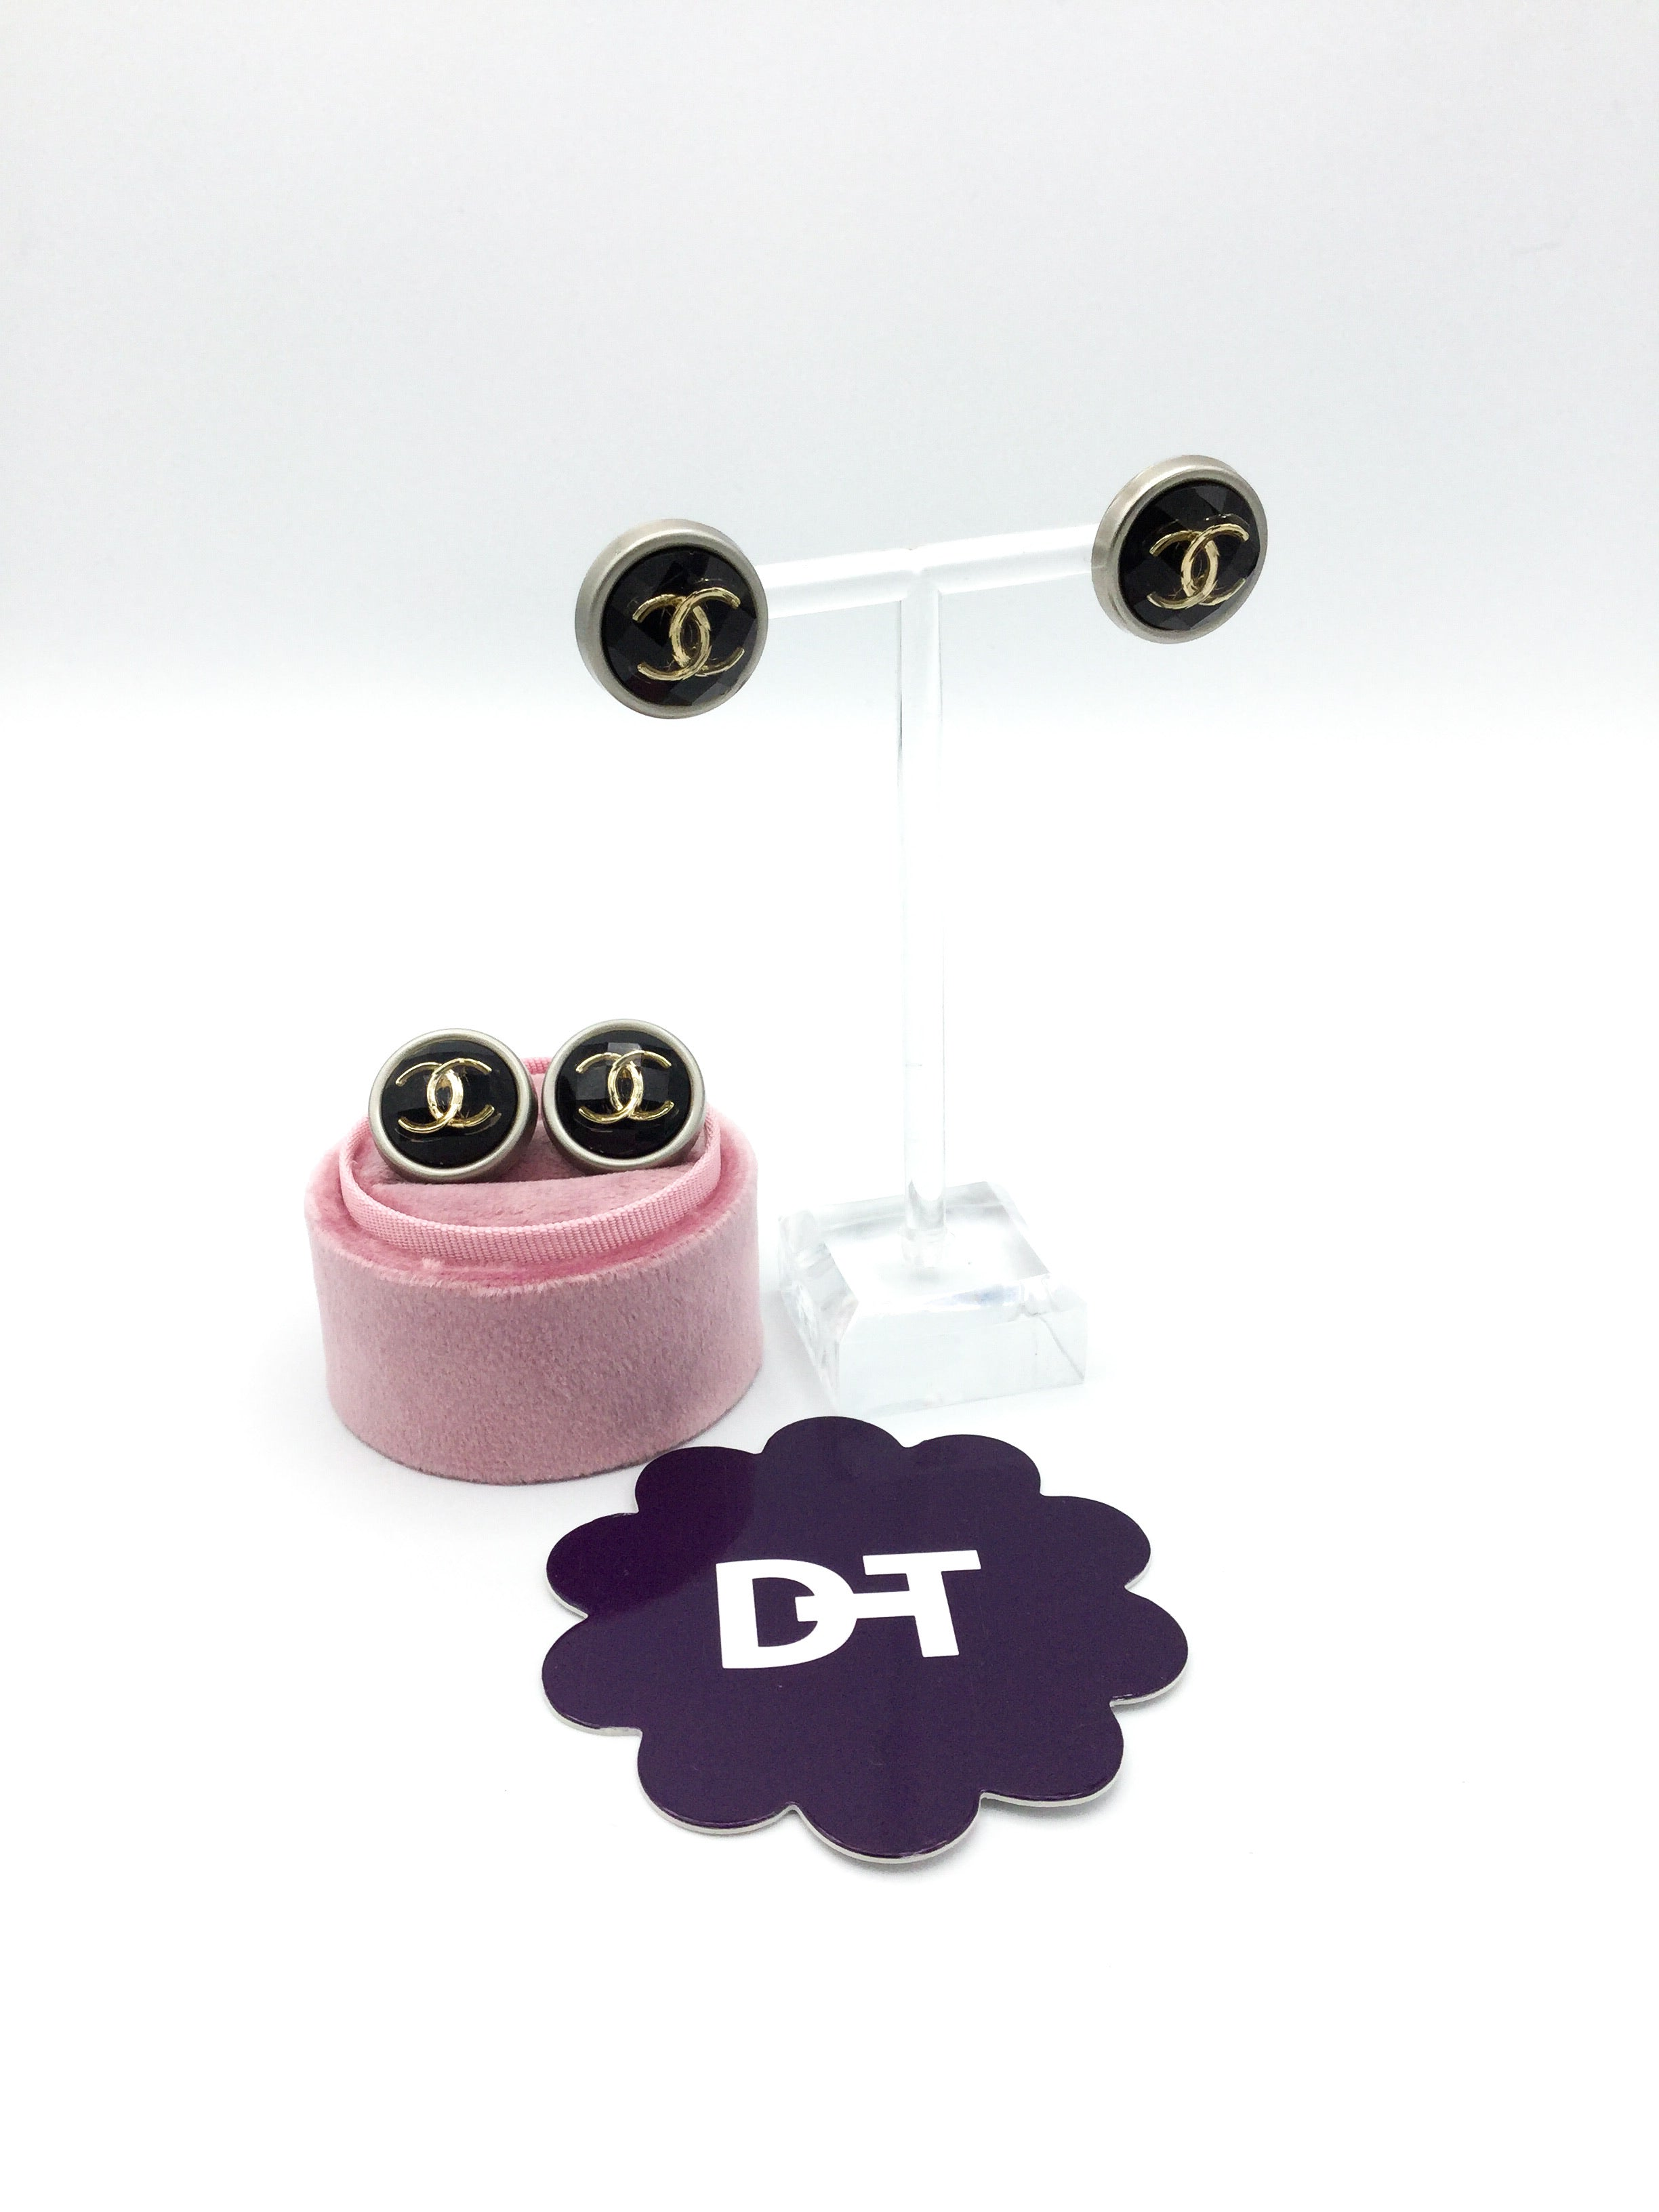 Designer Button Two-Toned Black, Silver & Gold Stud Earrings